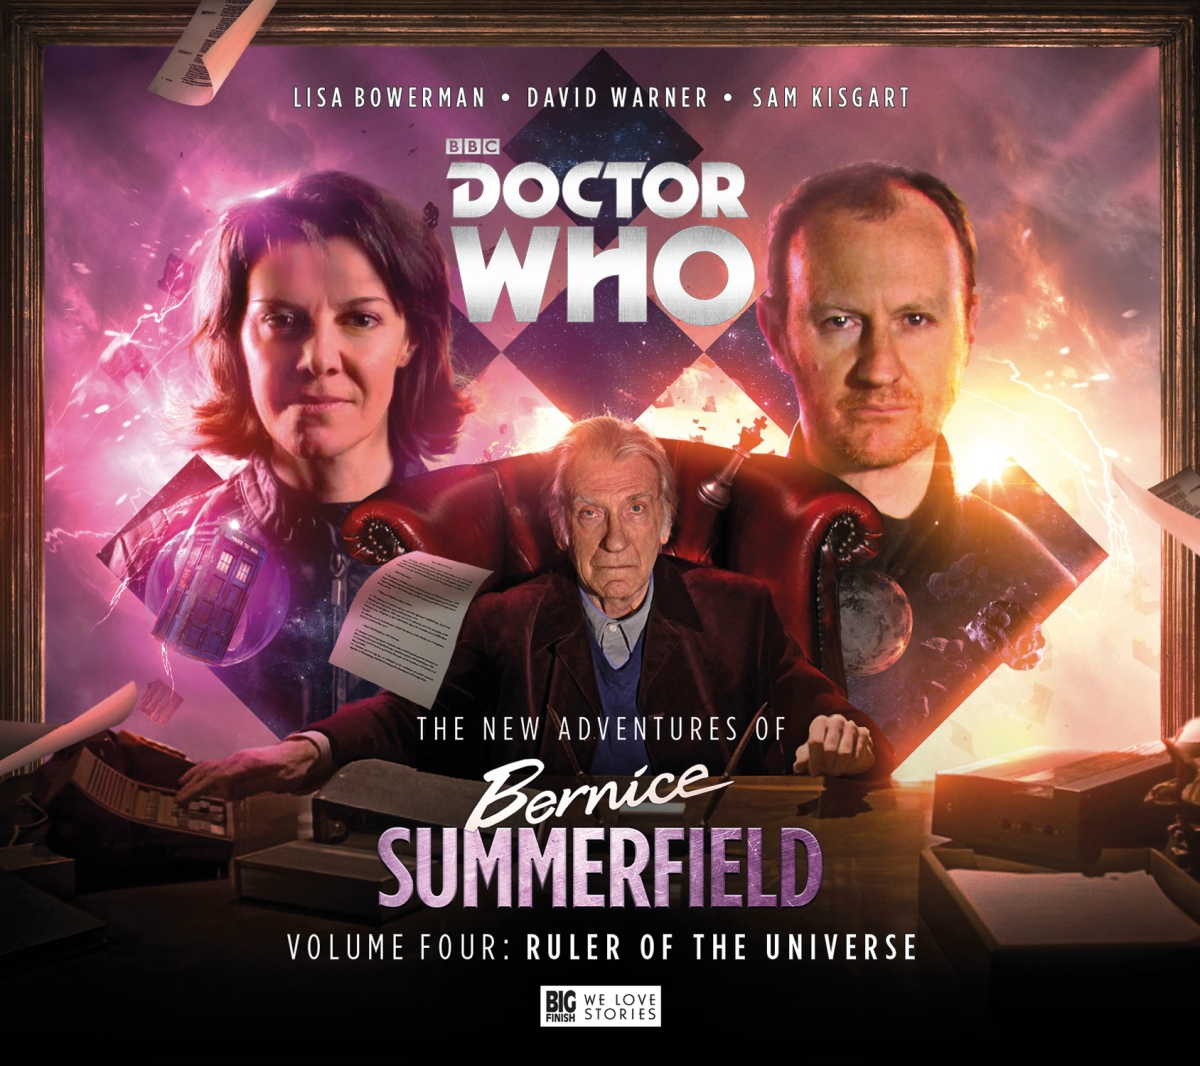 The New Adventures of Bernice Summerfield Volume Four: The Ruler of the Universe review